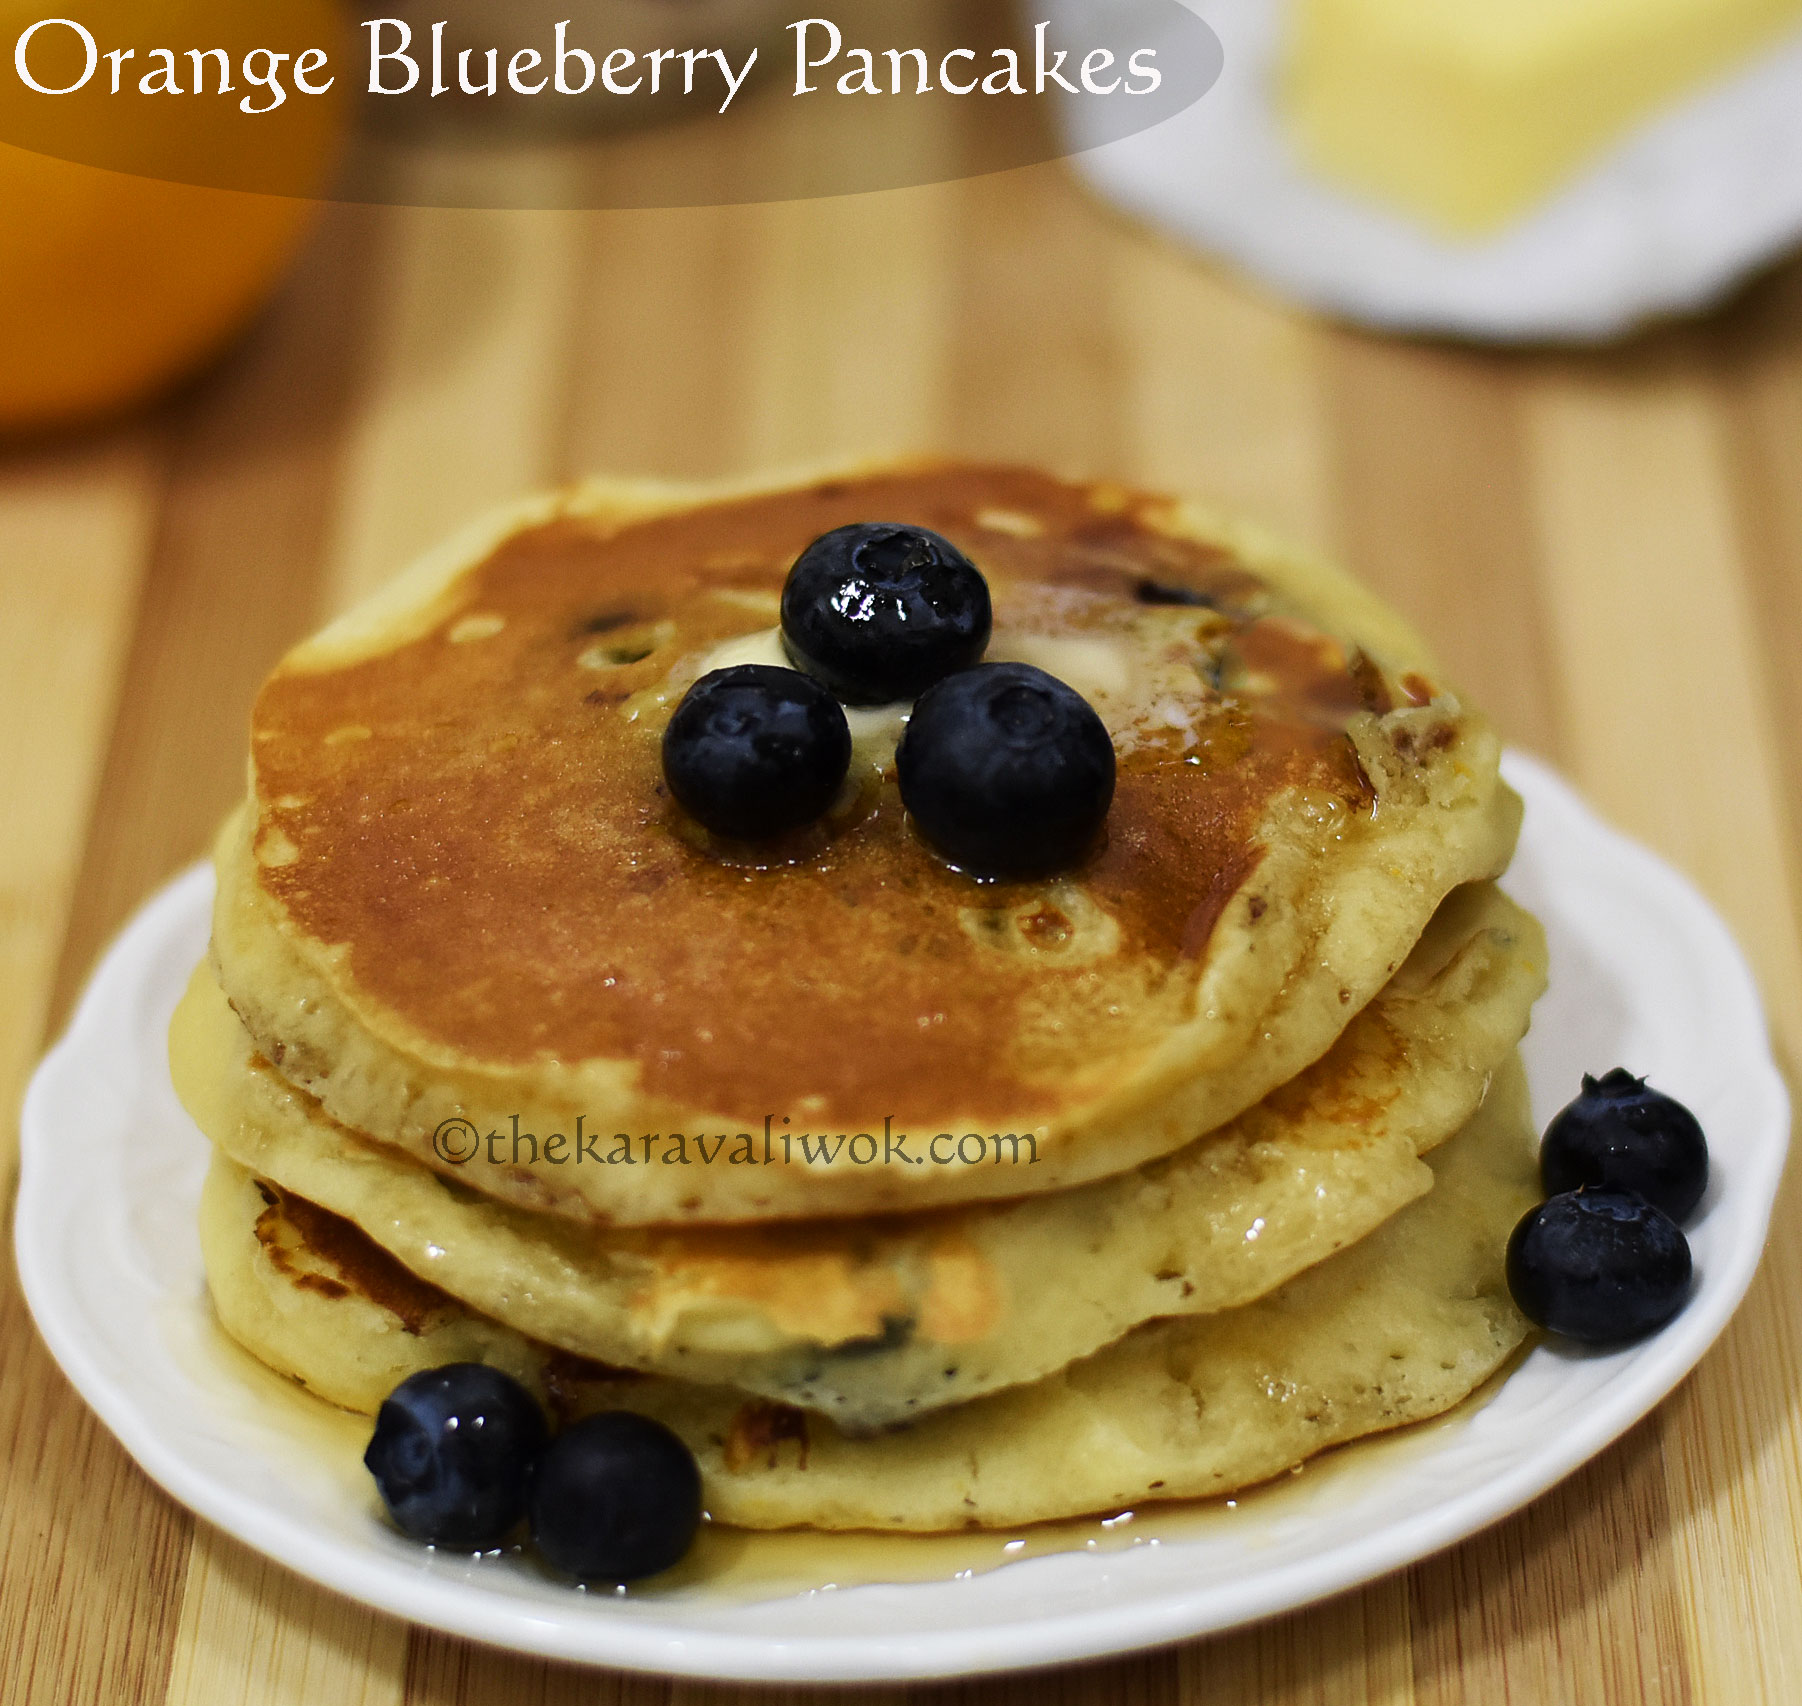 Orange Blueberry Pancakes